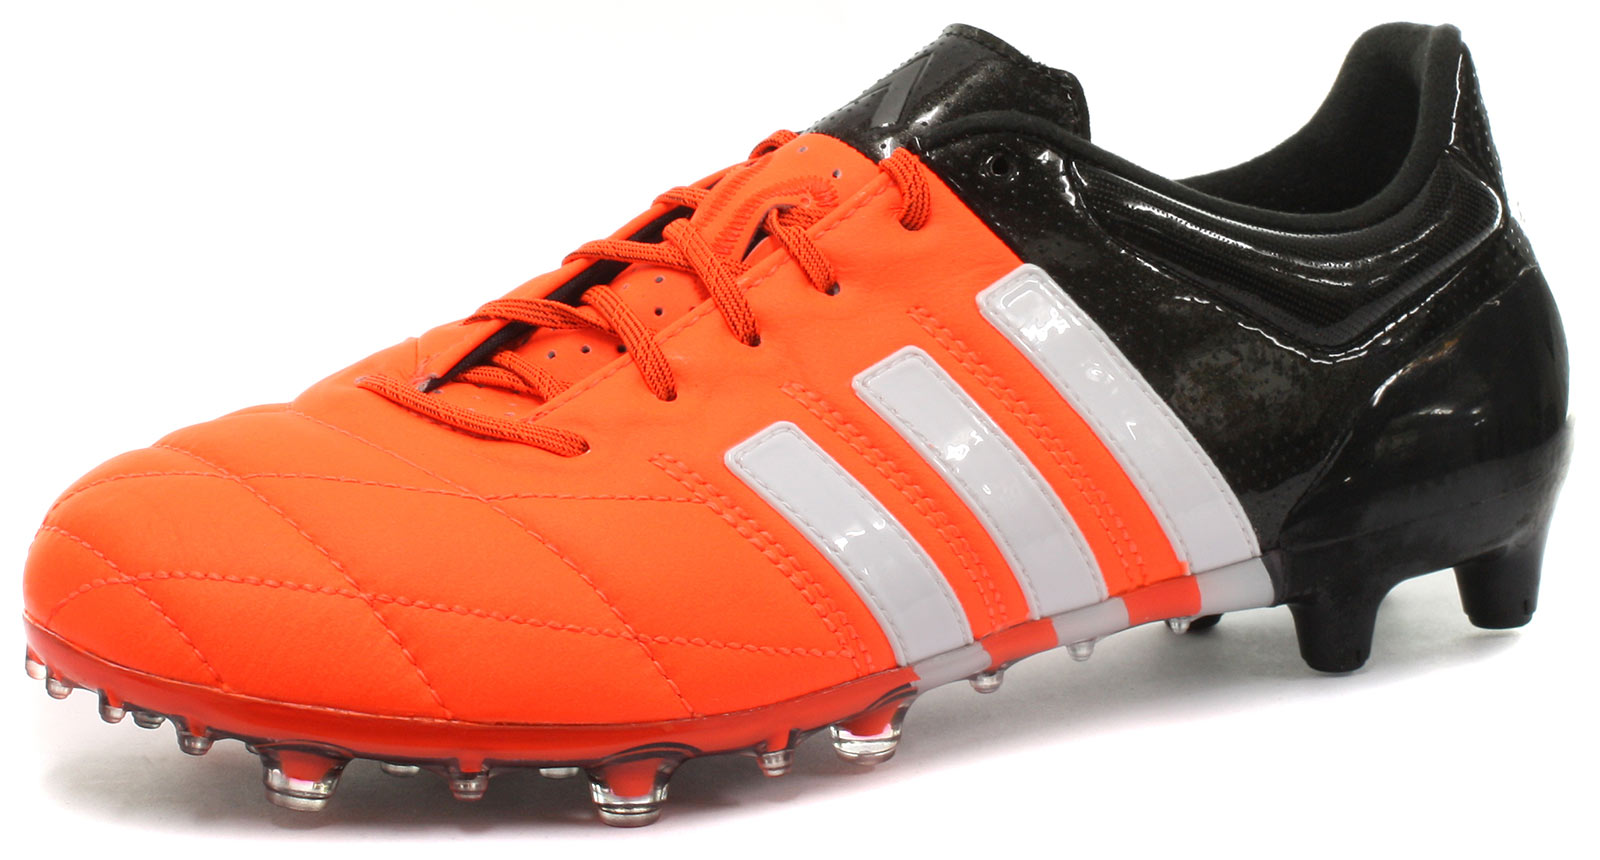 New adidas Ace 15.1 FG/AG Leather Mens Football Boots ALL ...